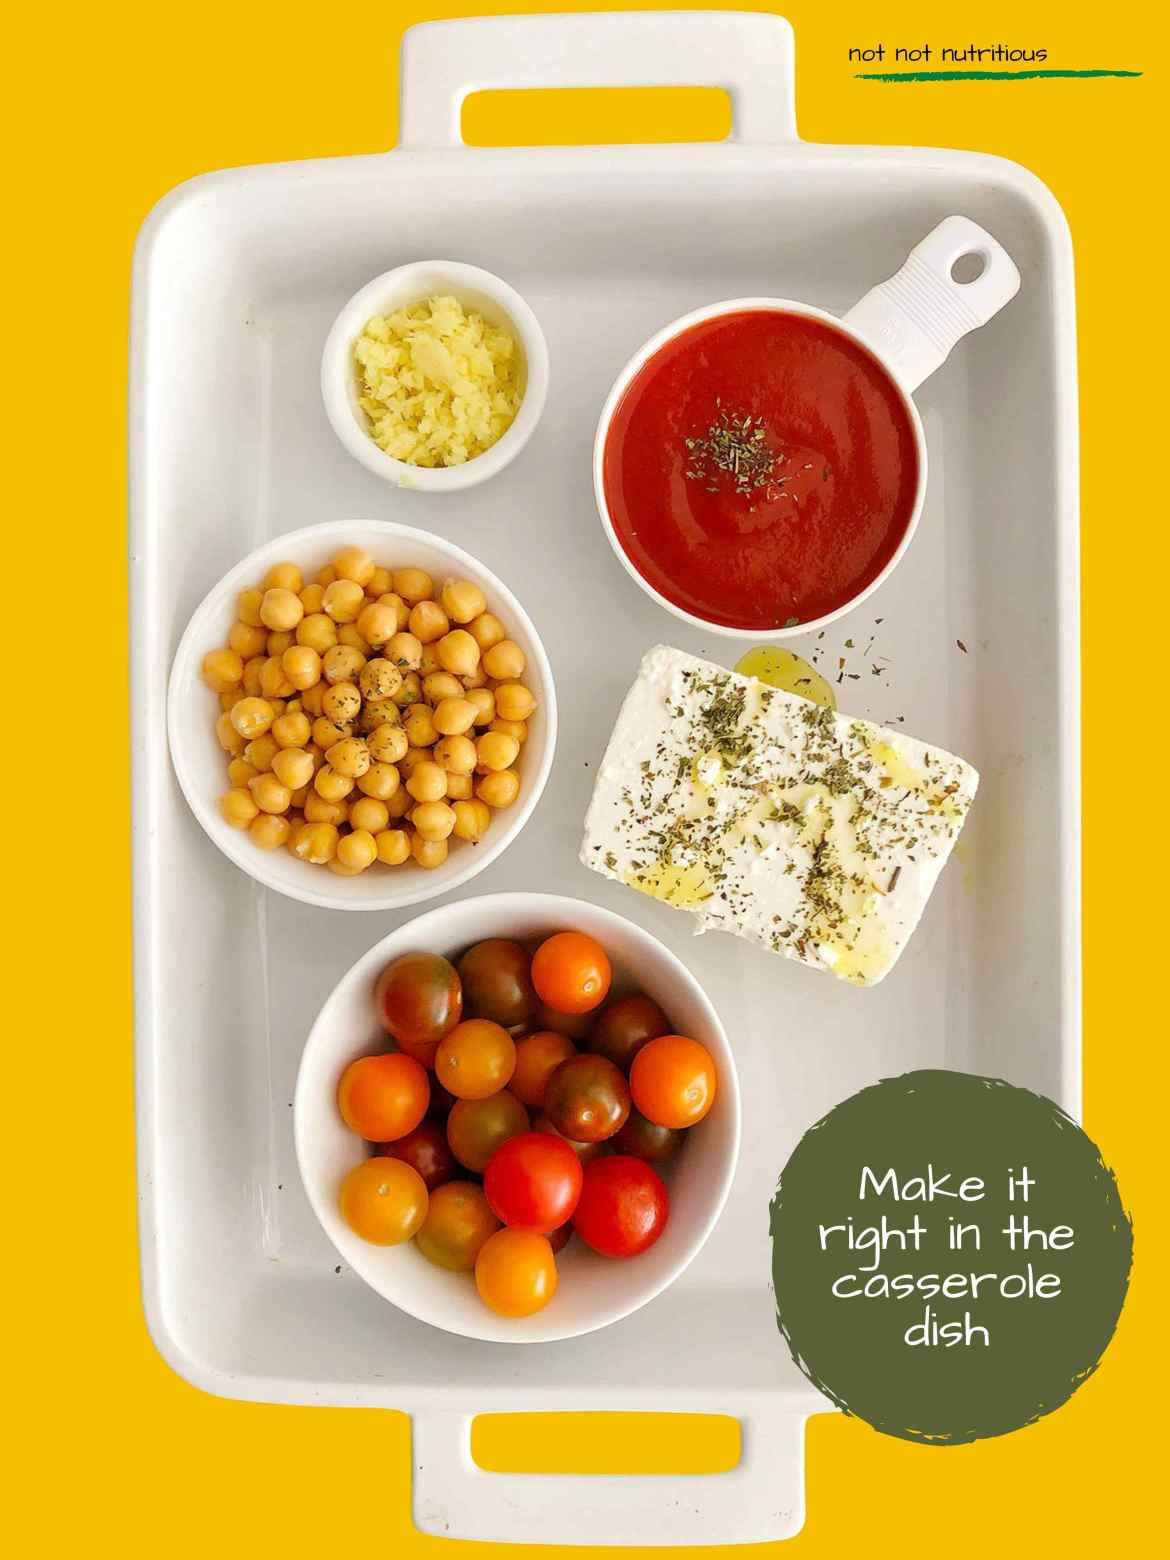 Top-down view of white casserole dish with ingredients for making Chickpea Feta Bake. From the top left:  minced garlic, tomato sauce, feta cheese (drizzled with olive oil and dried mint), cherry tomatoes, chickpeas. Text reads: Make it right in the casserole dish.